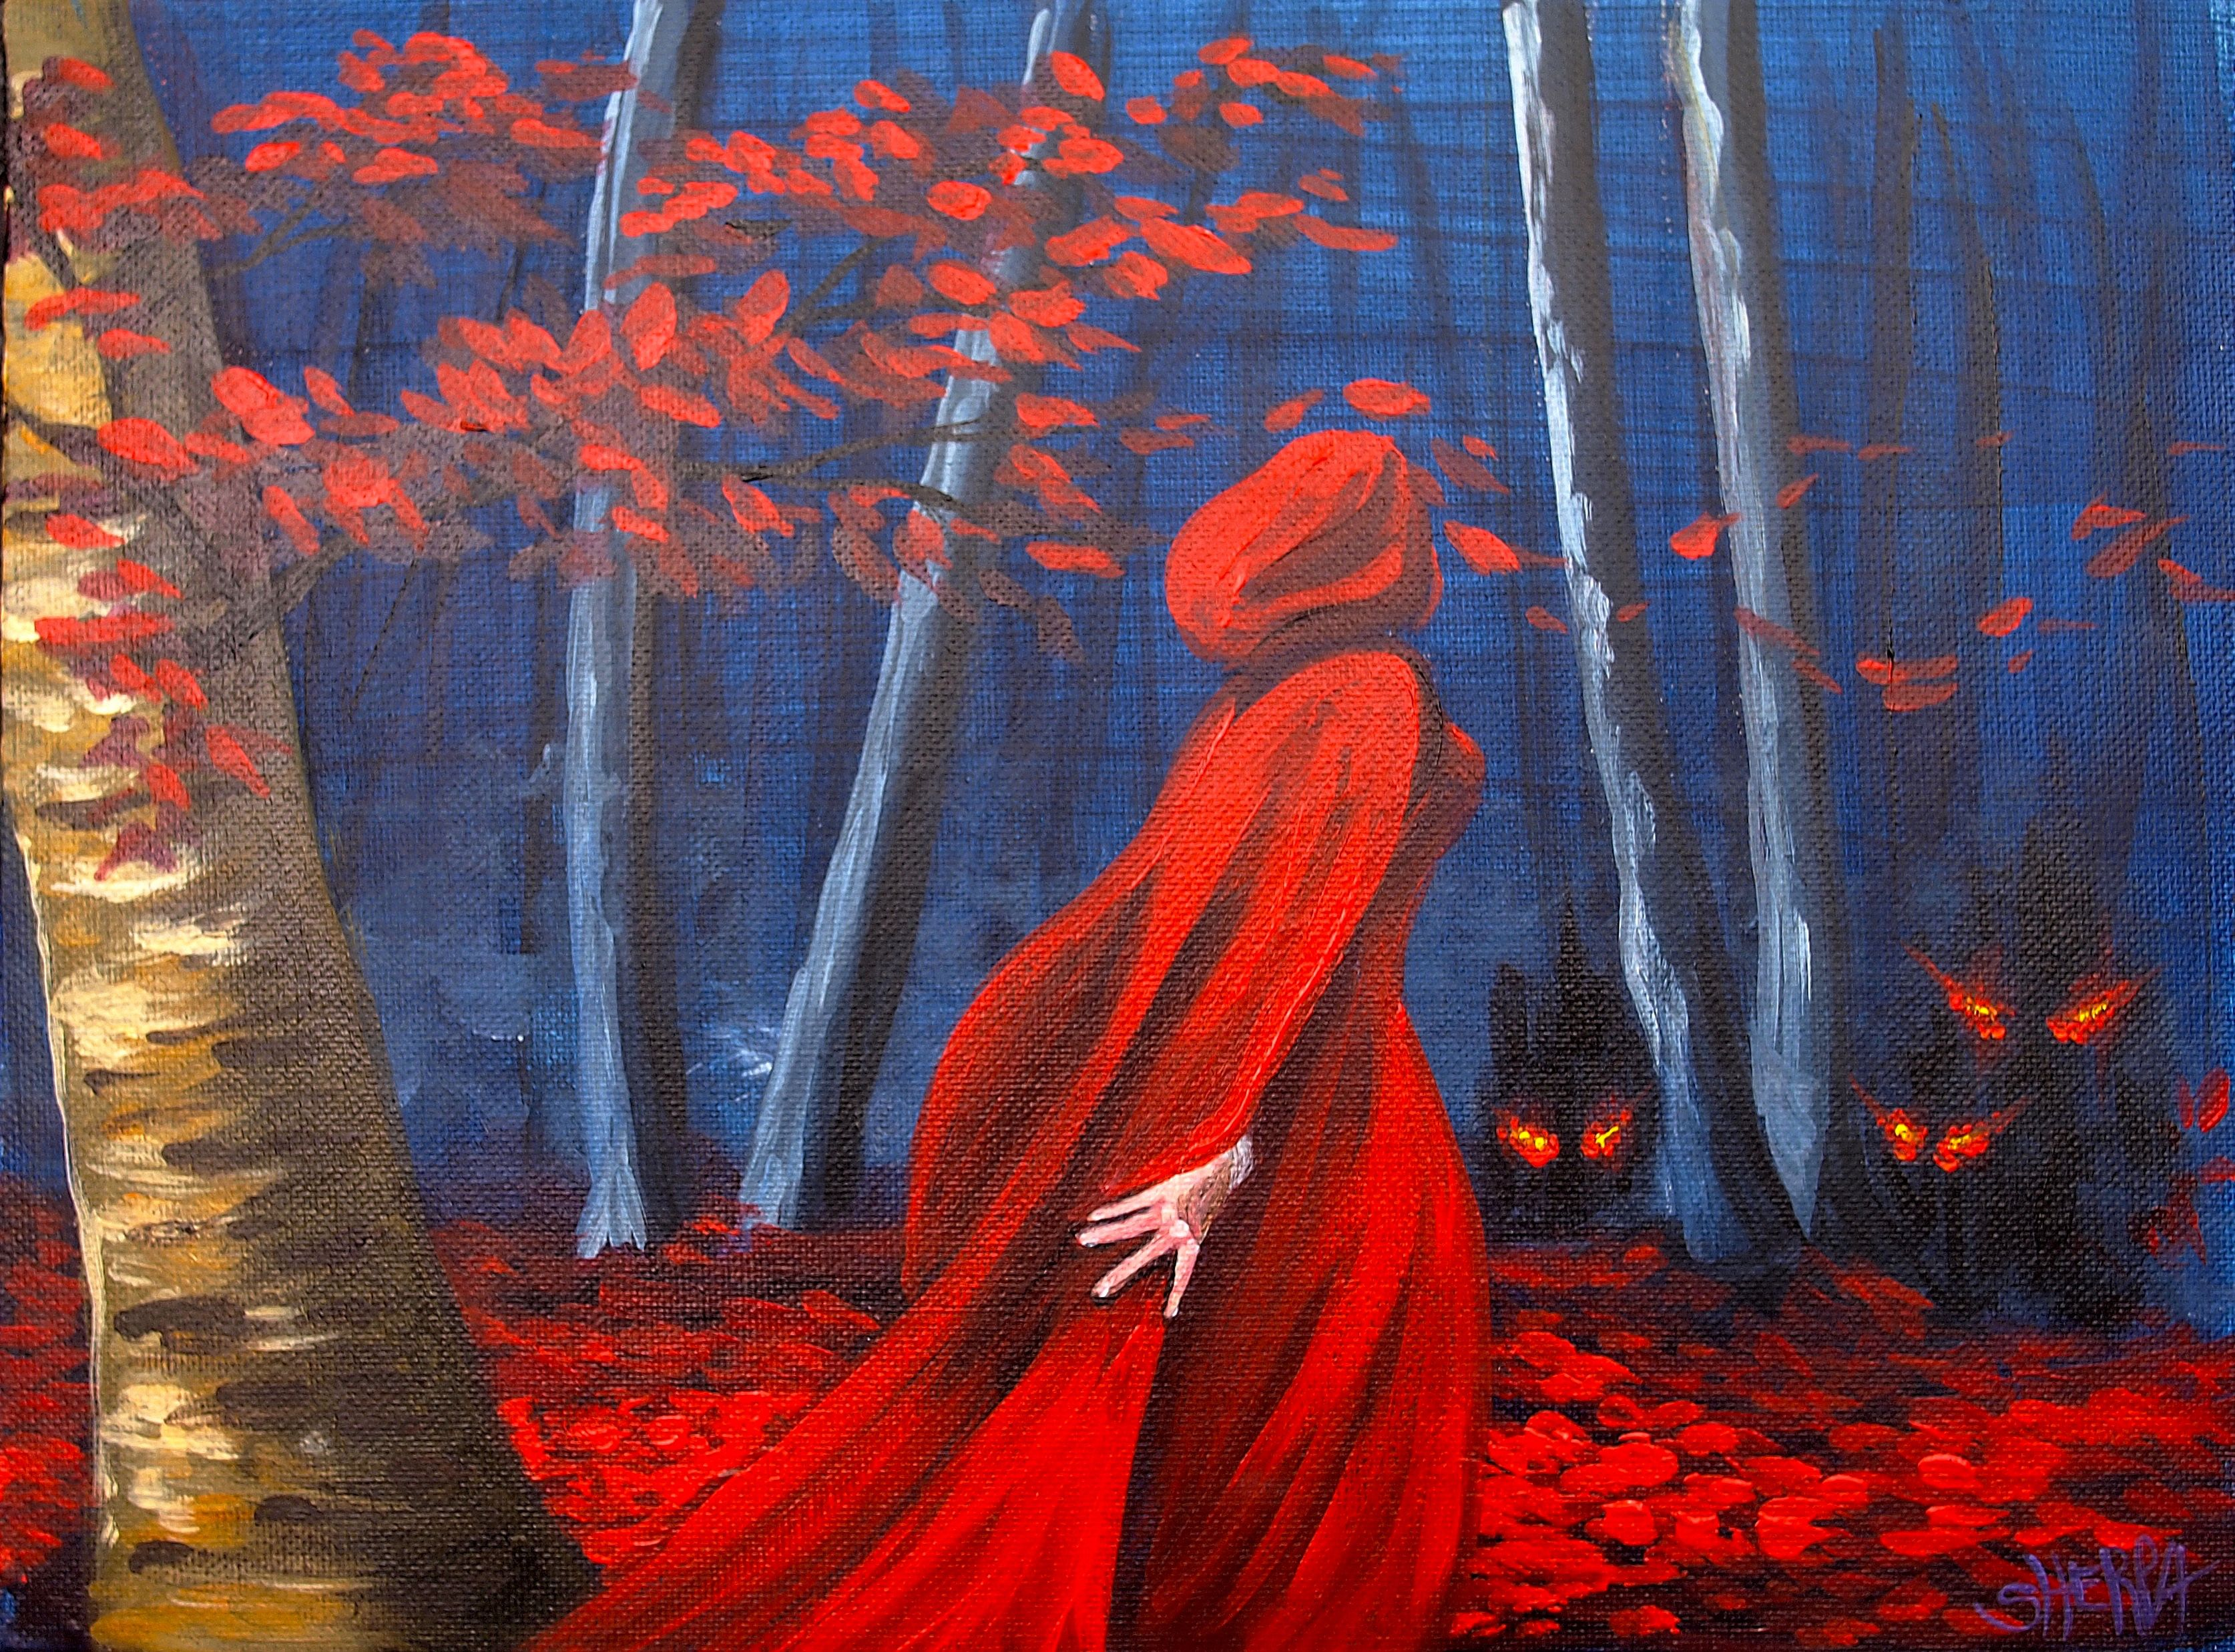 How To Paint Red Riding Hood By The Art Sherpa Abstract Art Painting Diy The Art Sherpa Painting